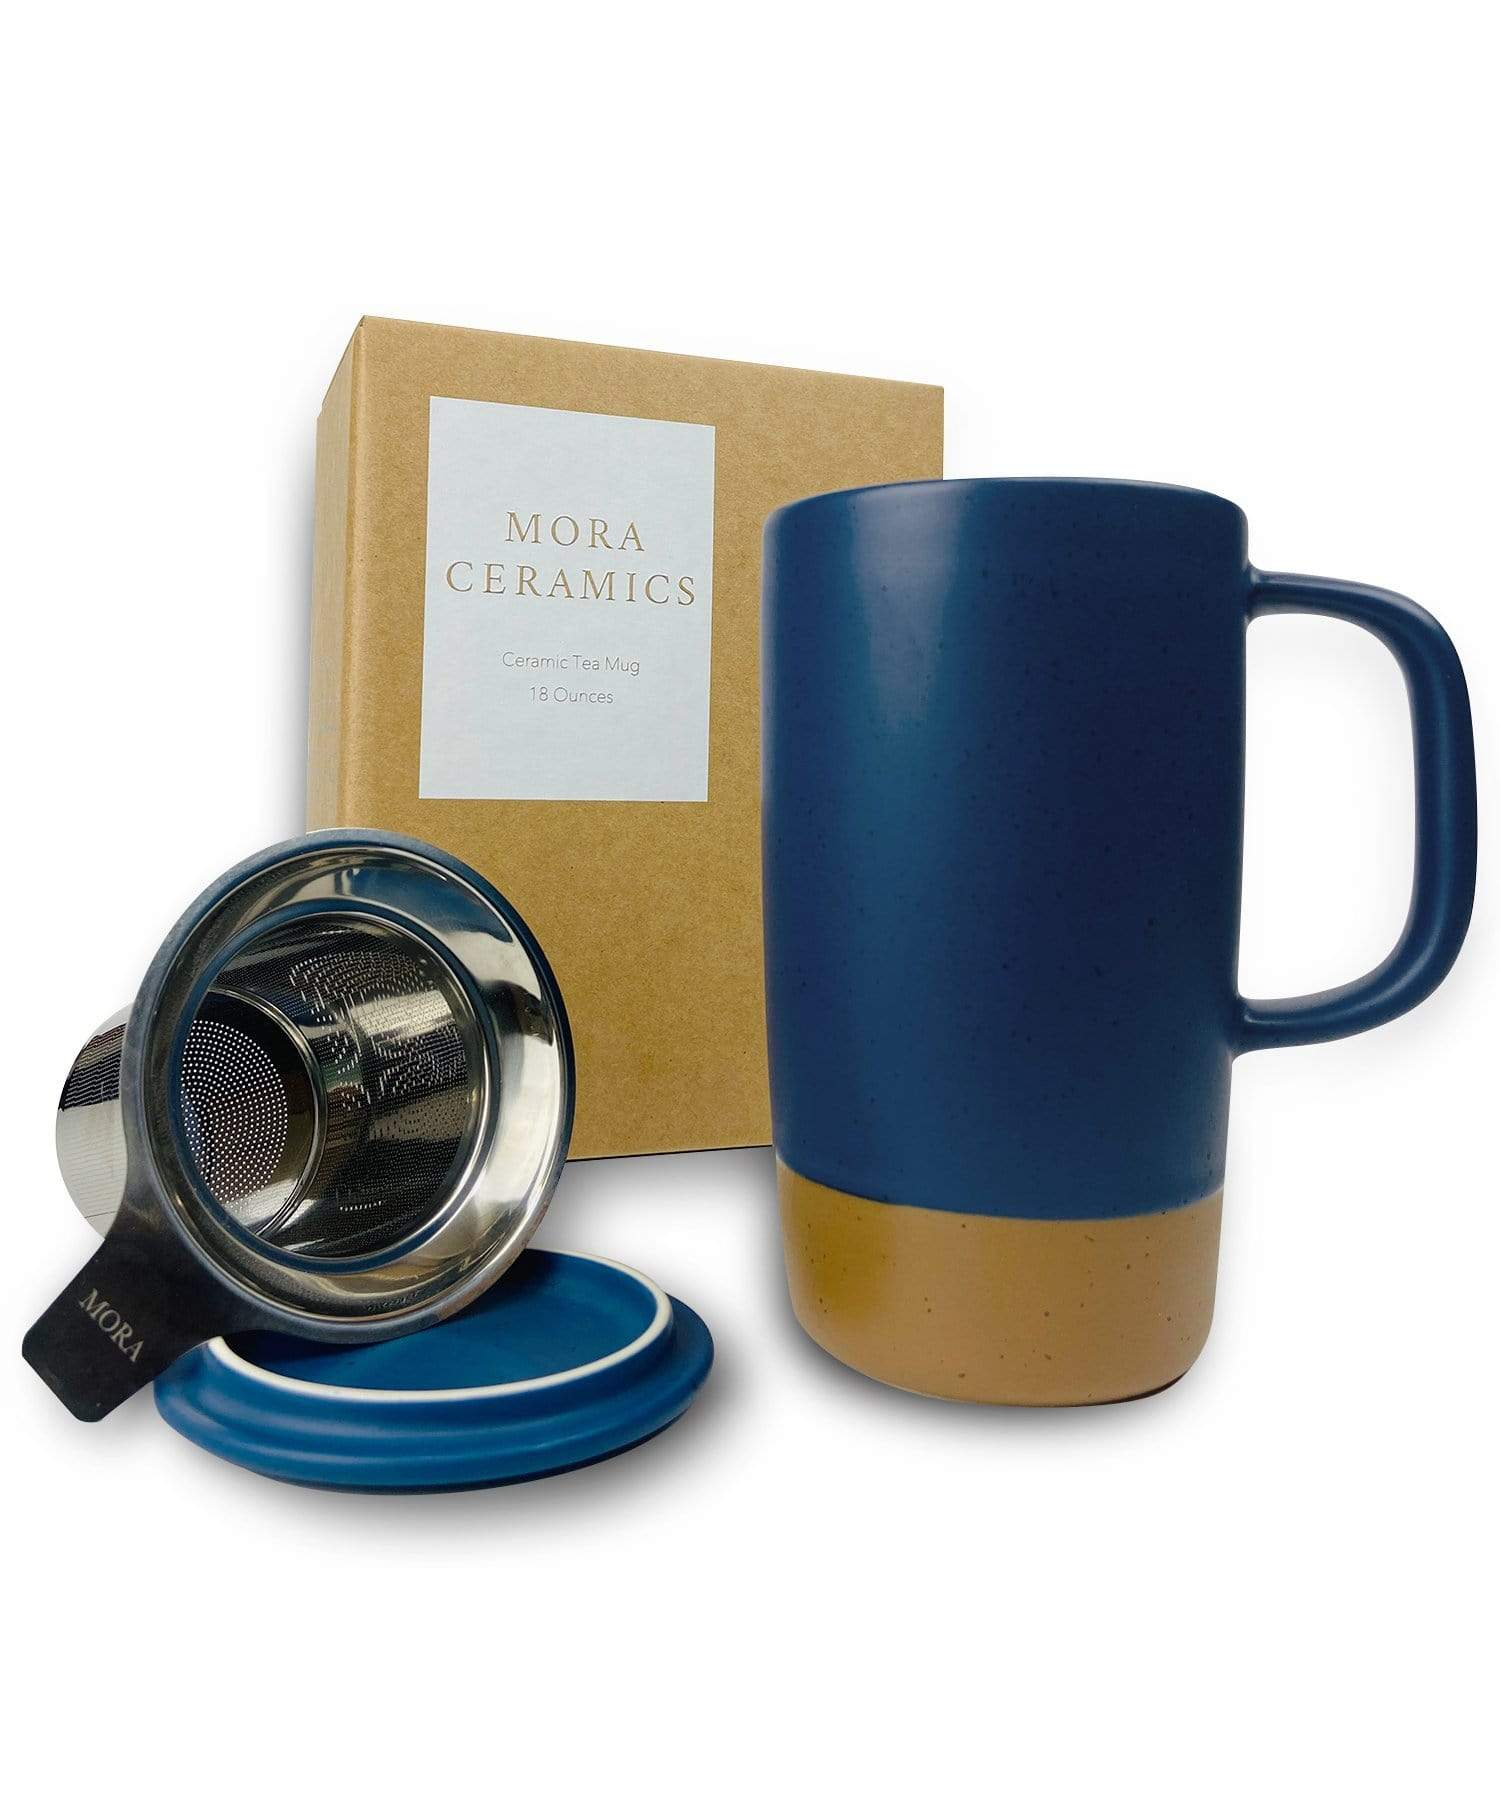 Large Tea mug with infuser and brown clay on the bottom by Mora Ceramics in deep blue